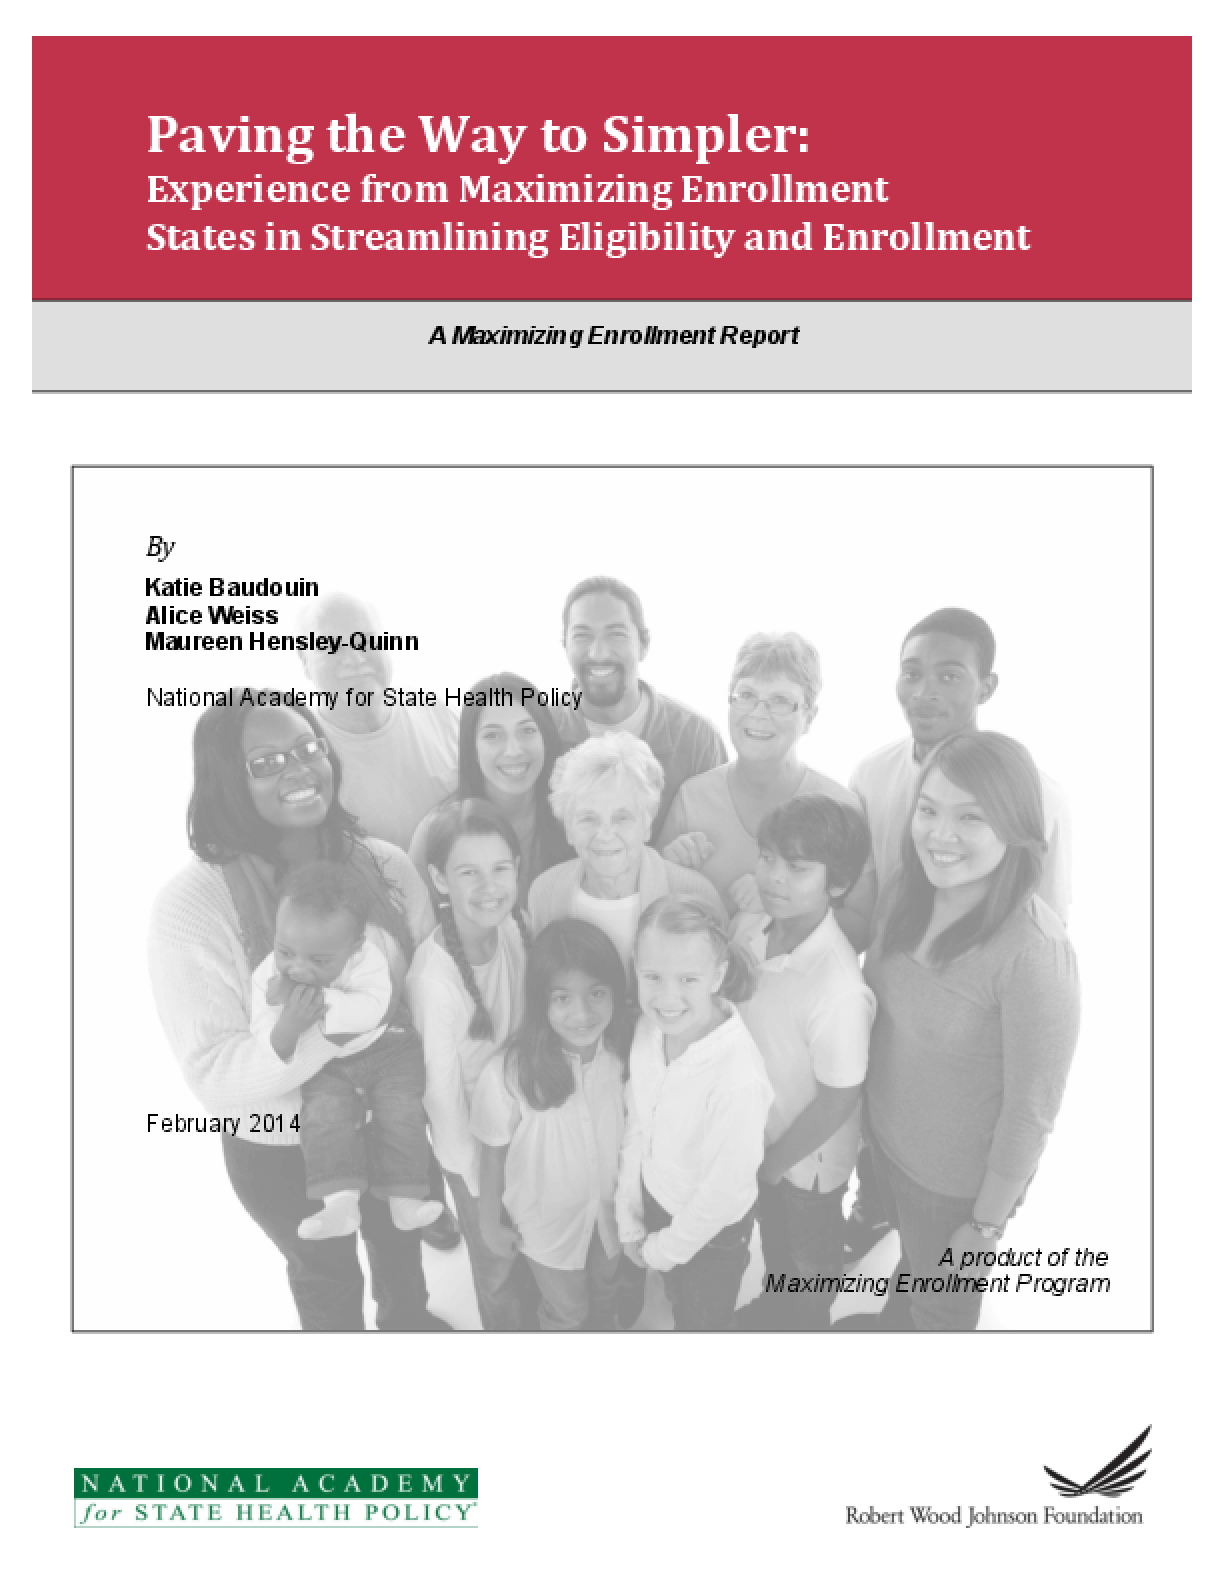 Paving the Way to Simpler: Experiencing from Maximizing Enrollment States in Streamlining Eligibility and Enrollment